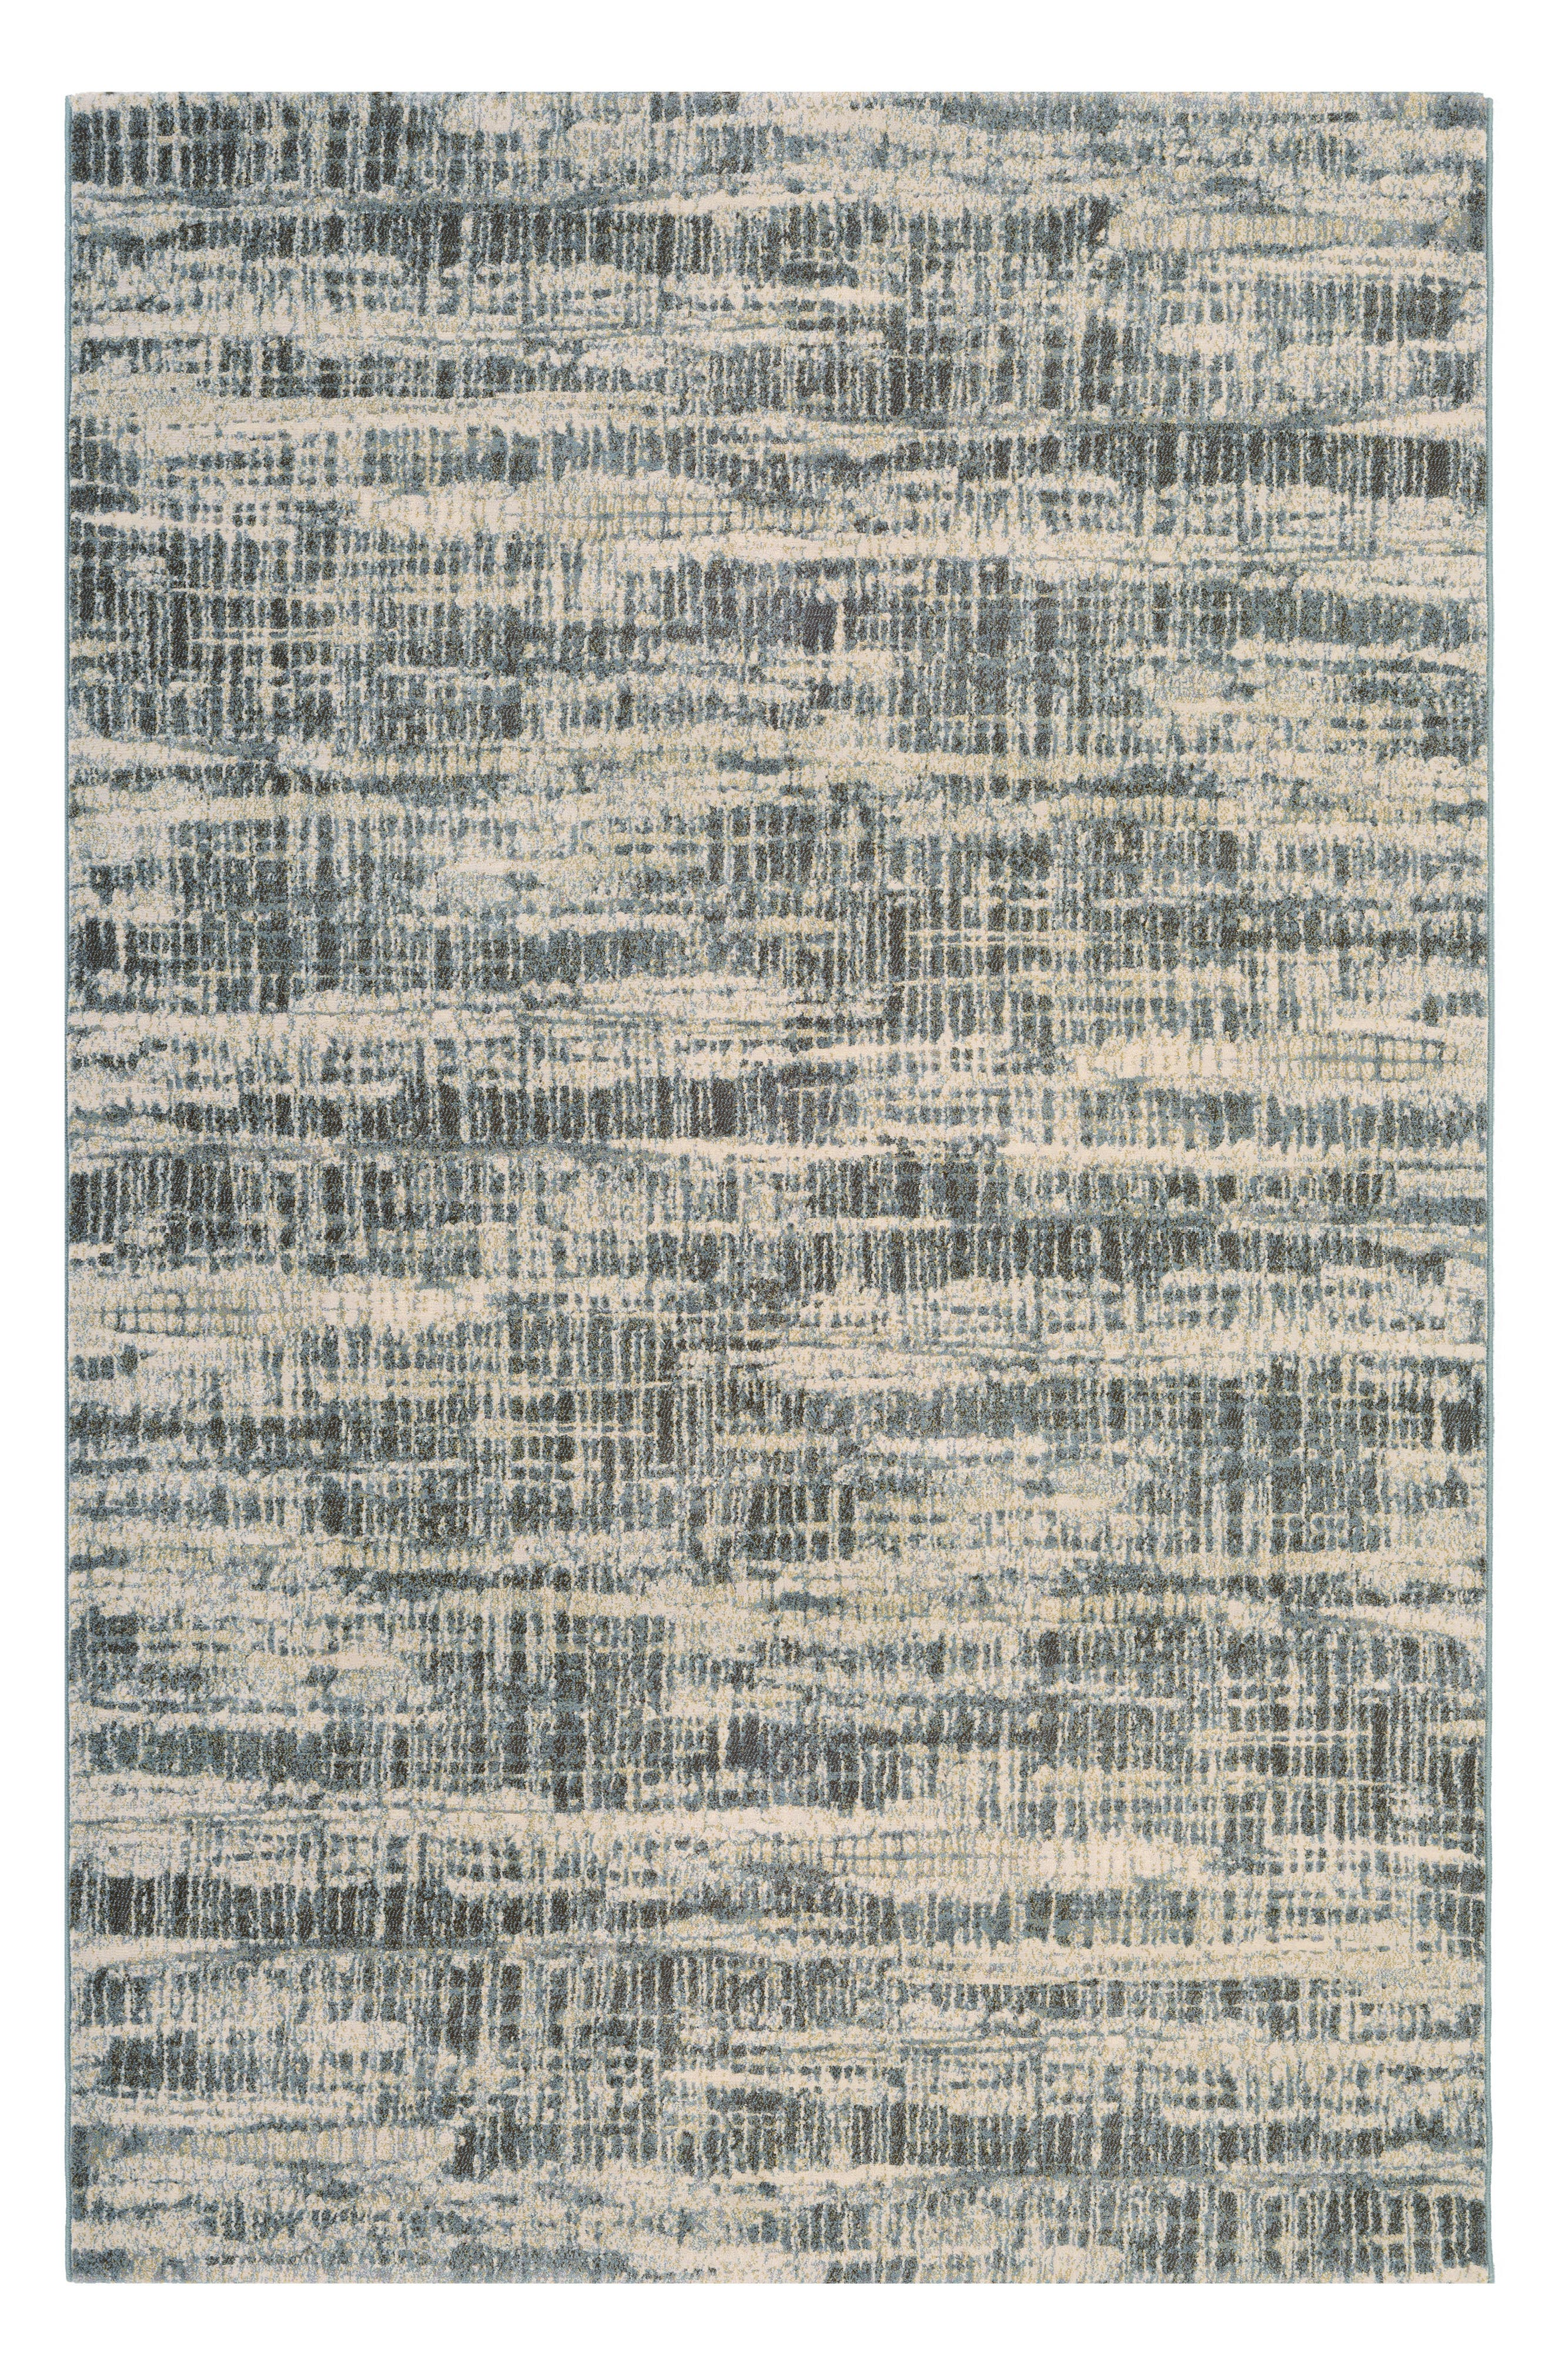 Alternate Image 1 Selected - Couristan Easton Maynard Area Rug